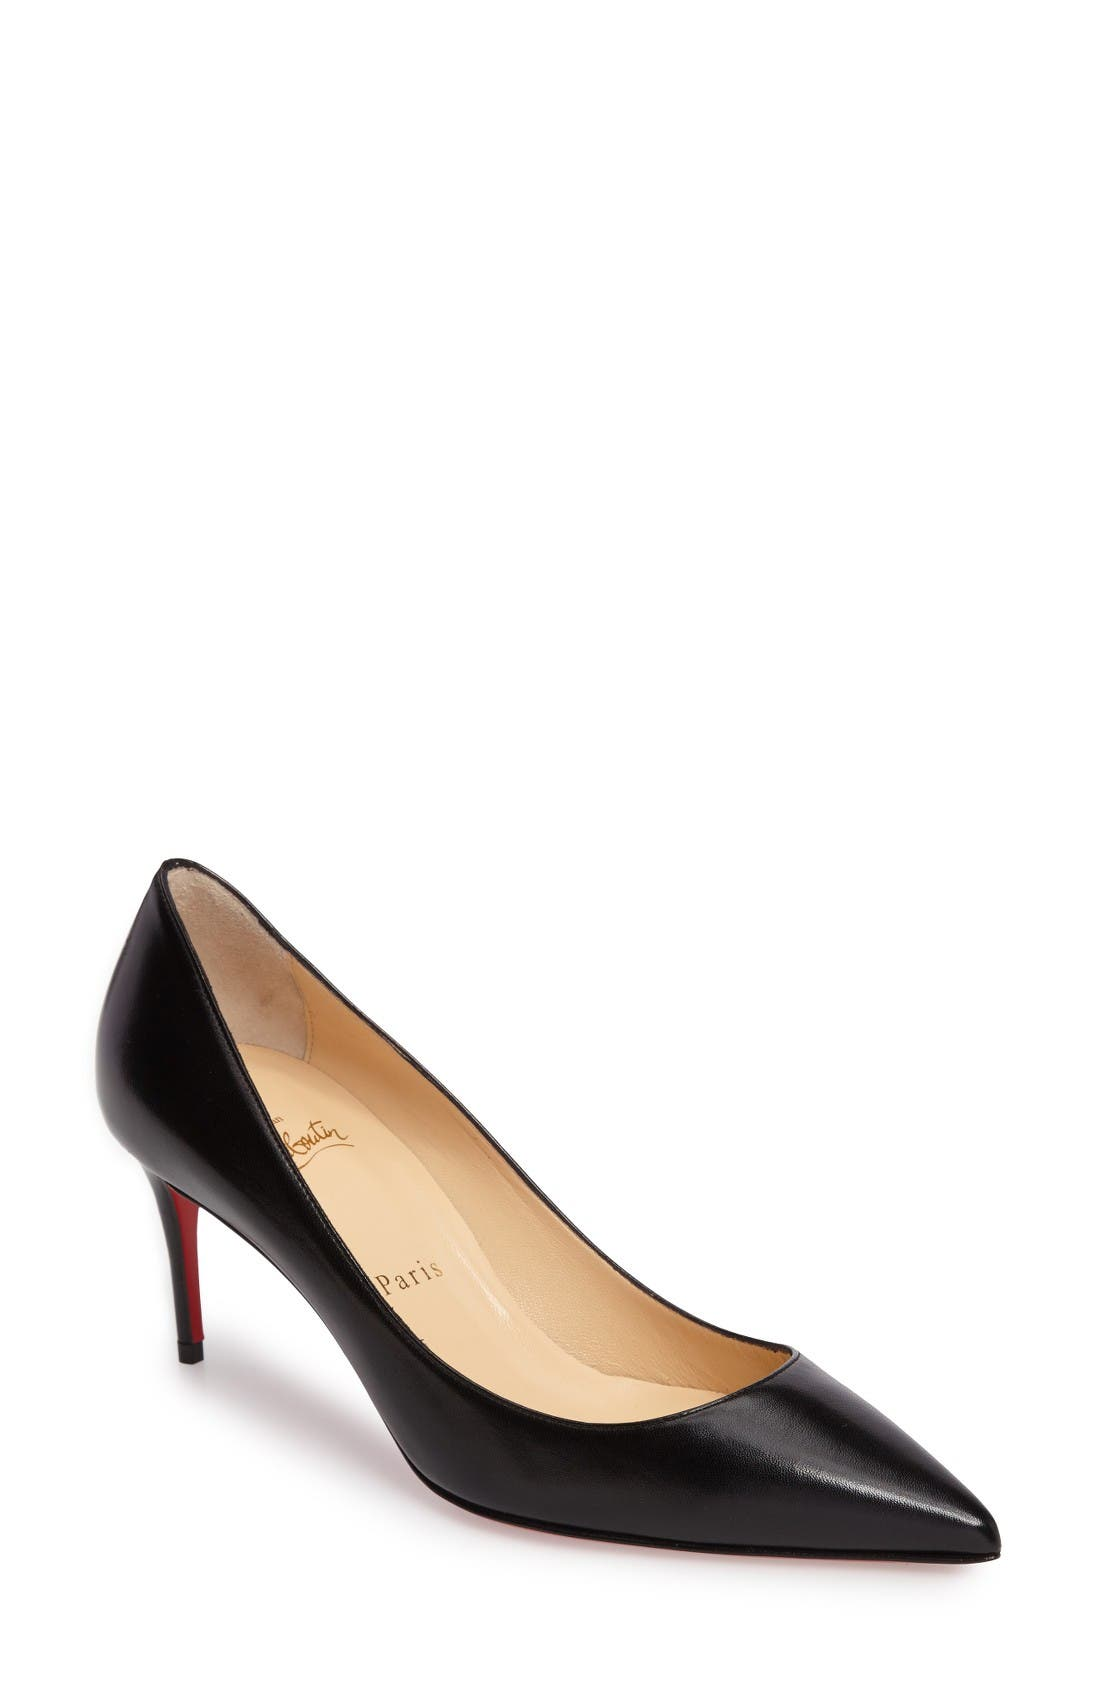 CHRISTIAN LOUBOUTIN Decollette Pointy Toe Pump